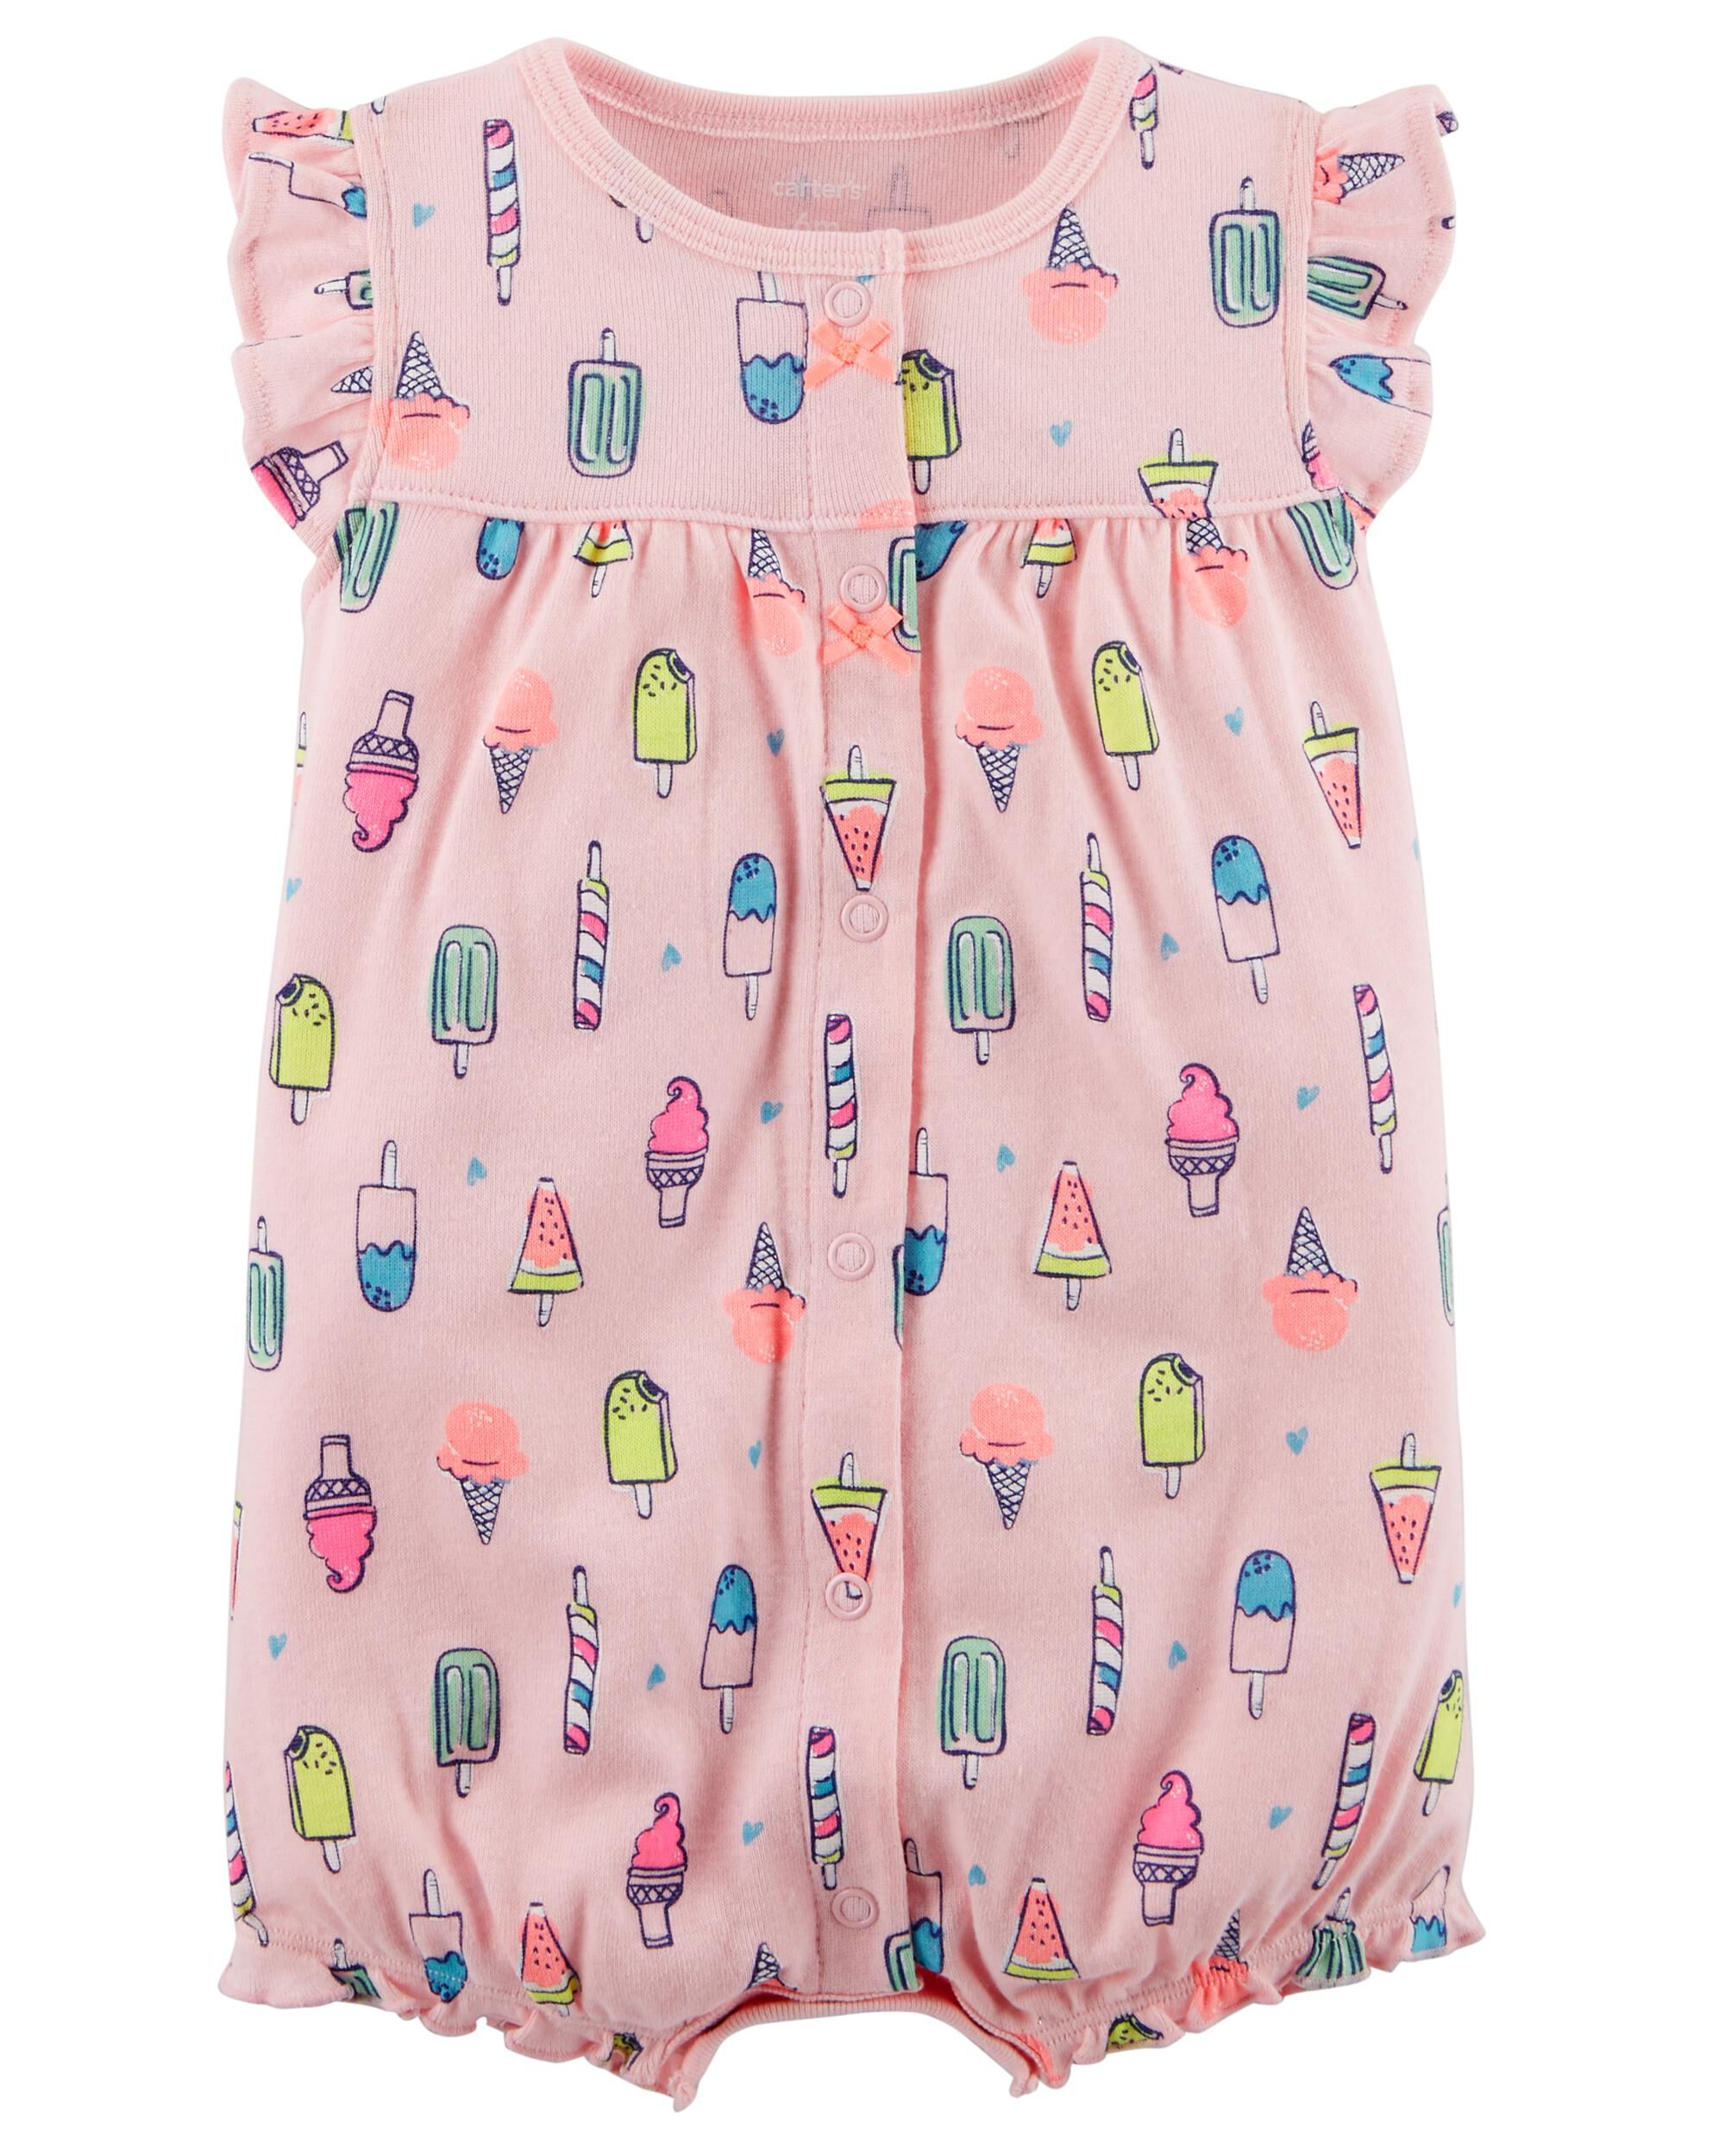 Carters Baby Girls Snap-Up Cotton Romper 9M, Ice Cream//Pink